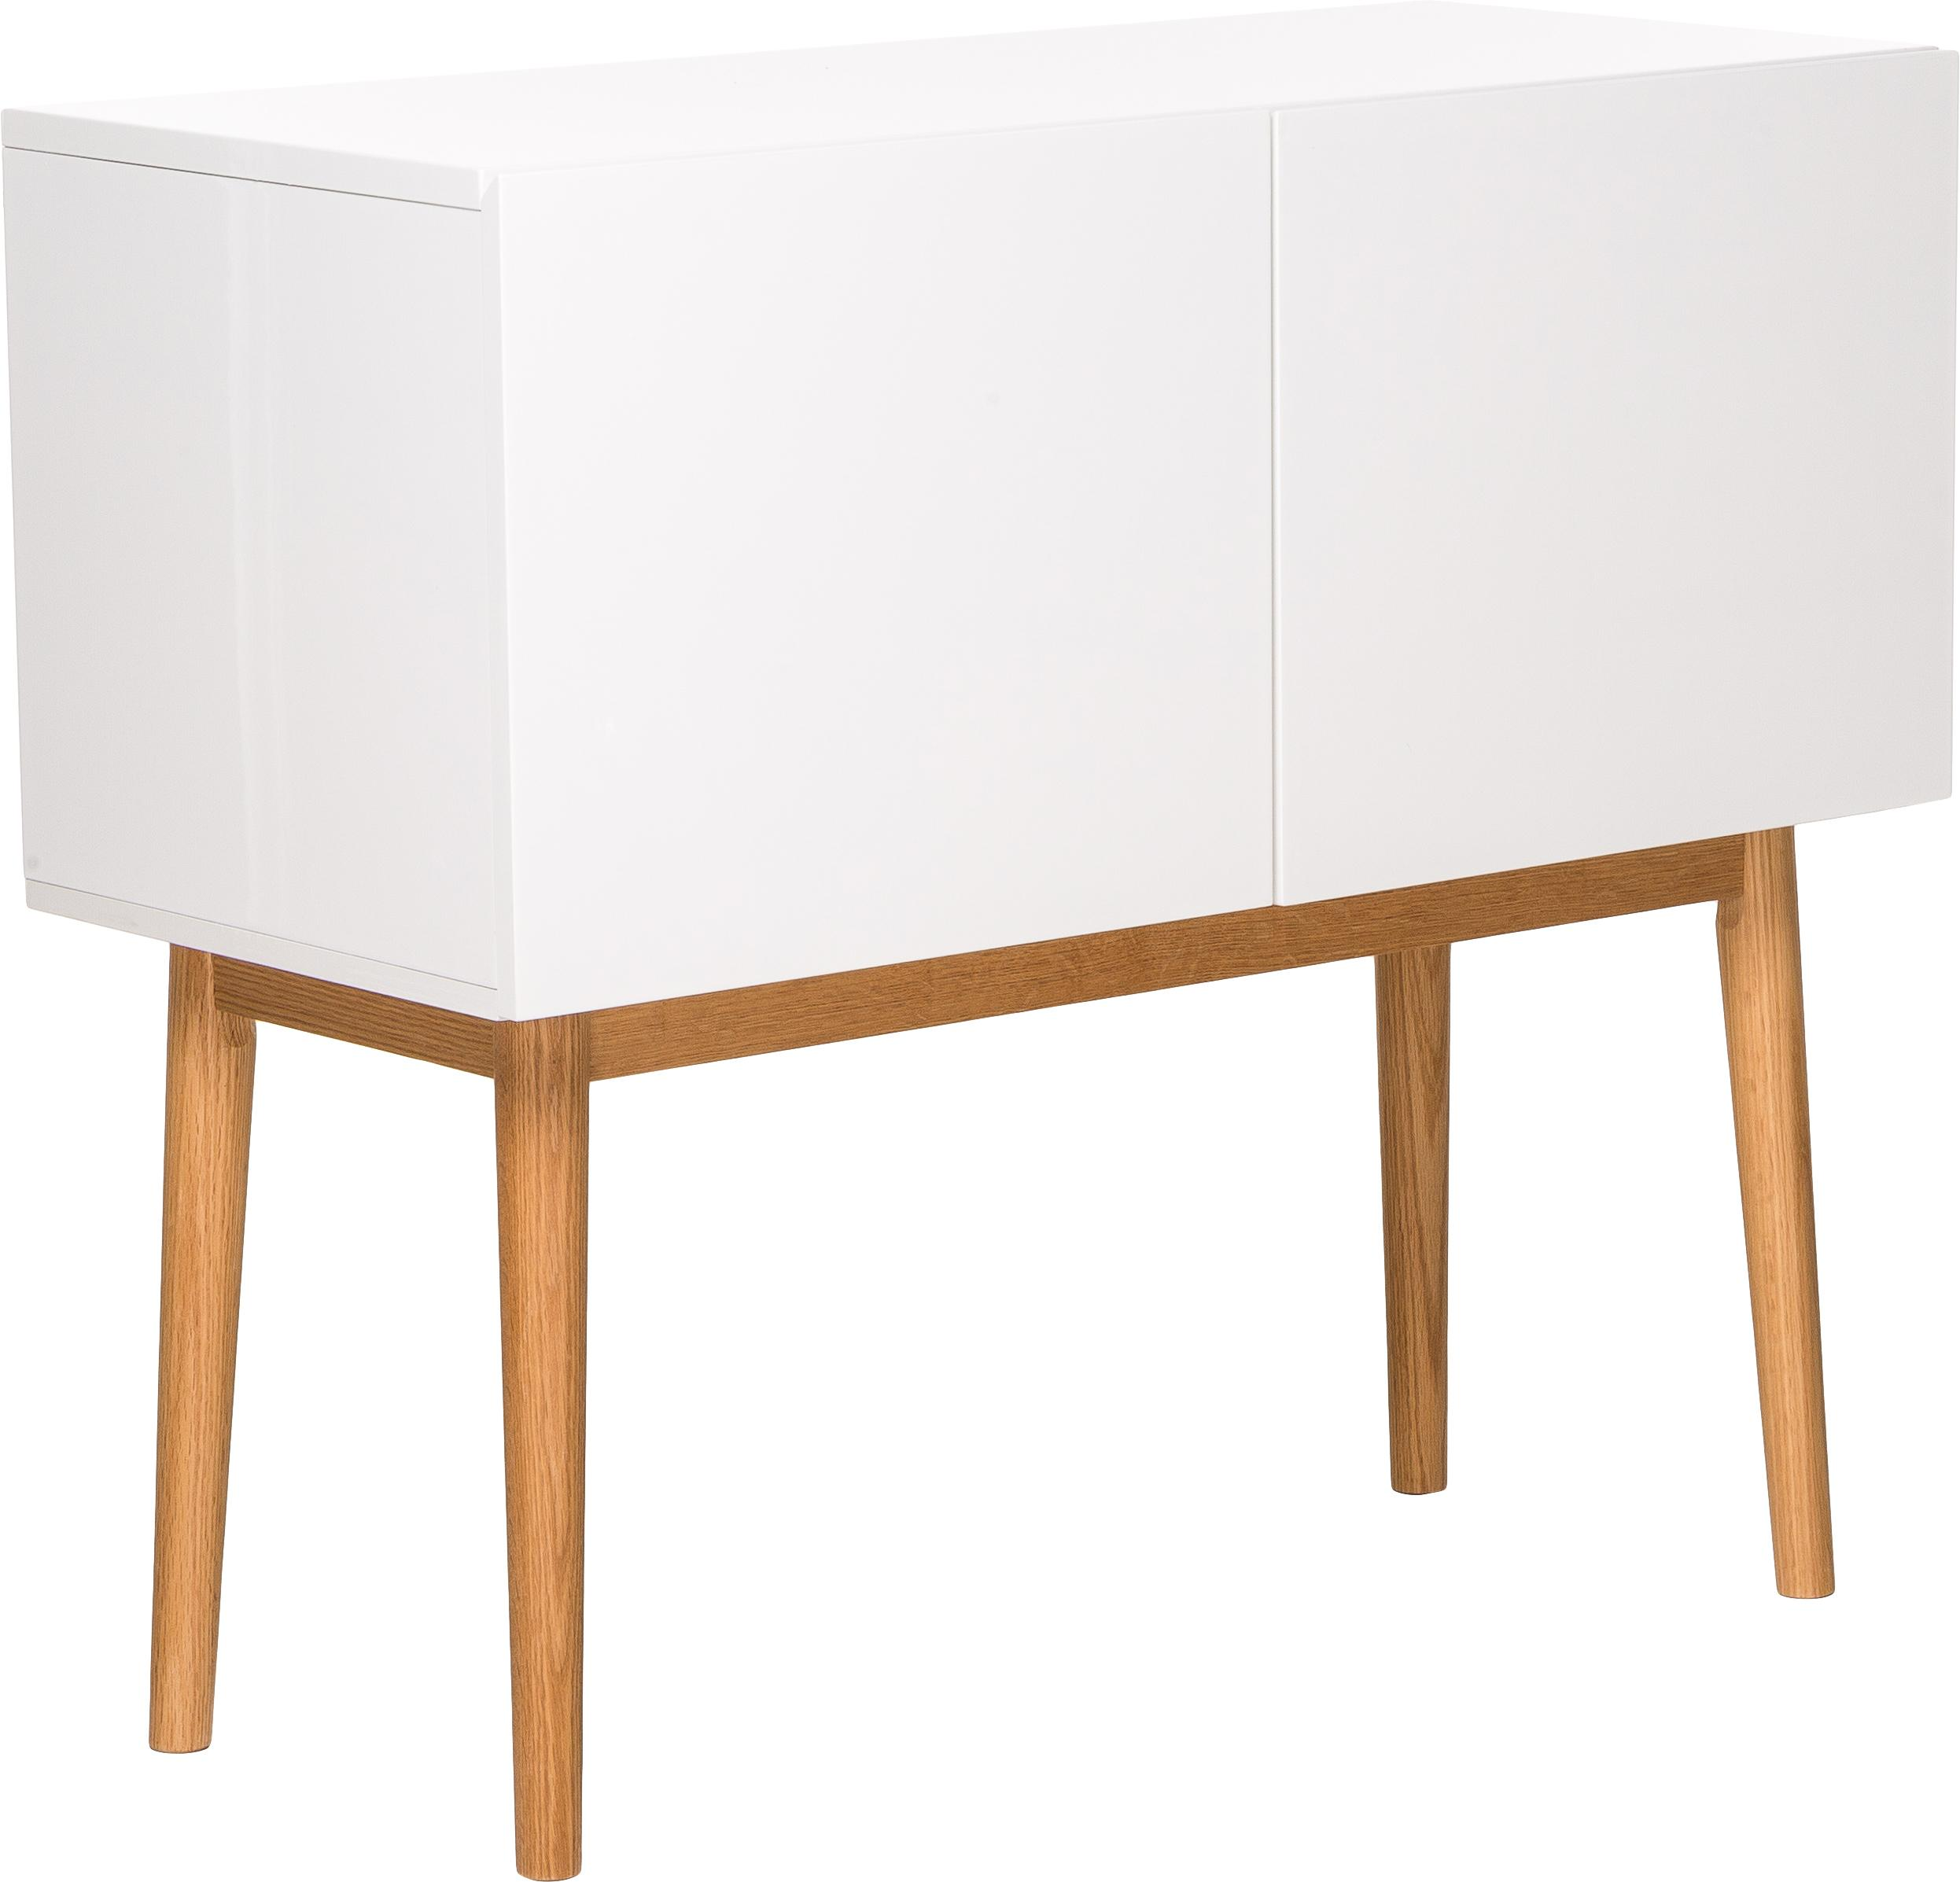 Kleine dressoir High on Wood in wit hoogglans, Frame: PU gelakt MDF, Poten: massief eikenhout, Wit, naturel, 90 x 80 cm